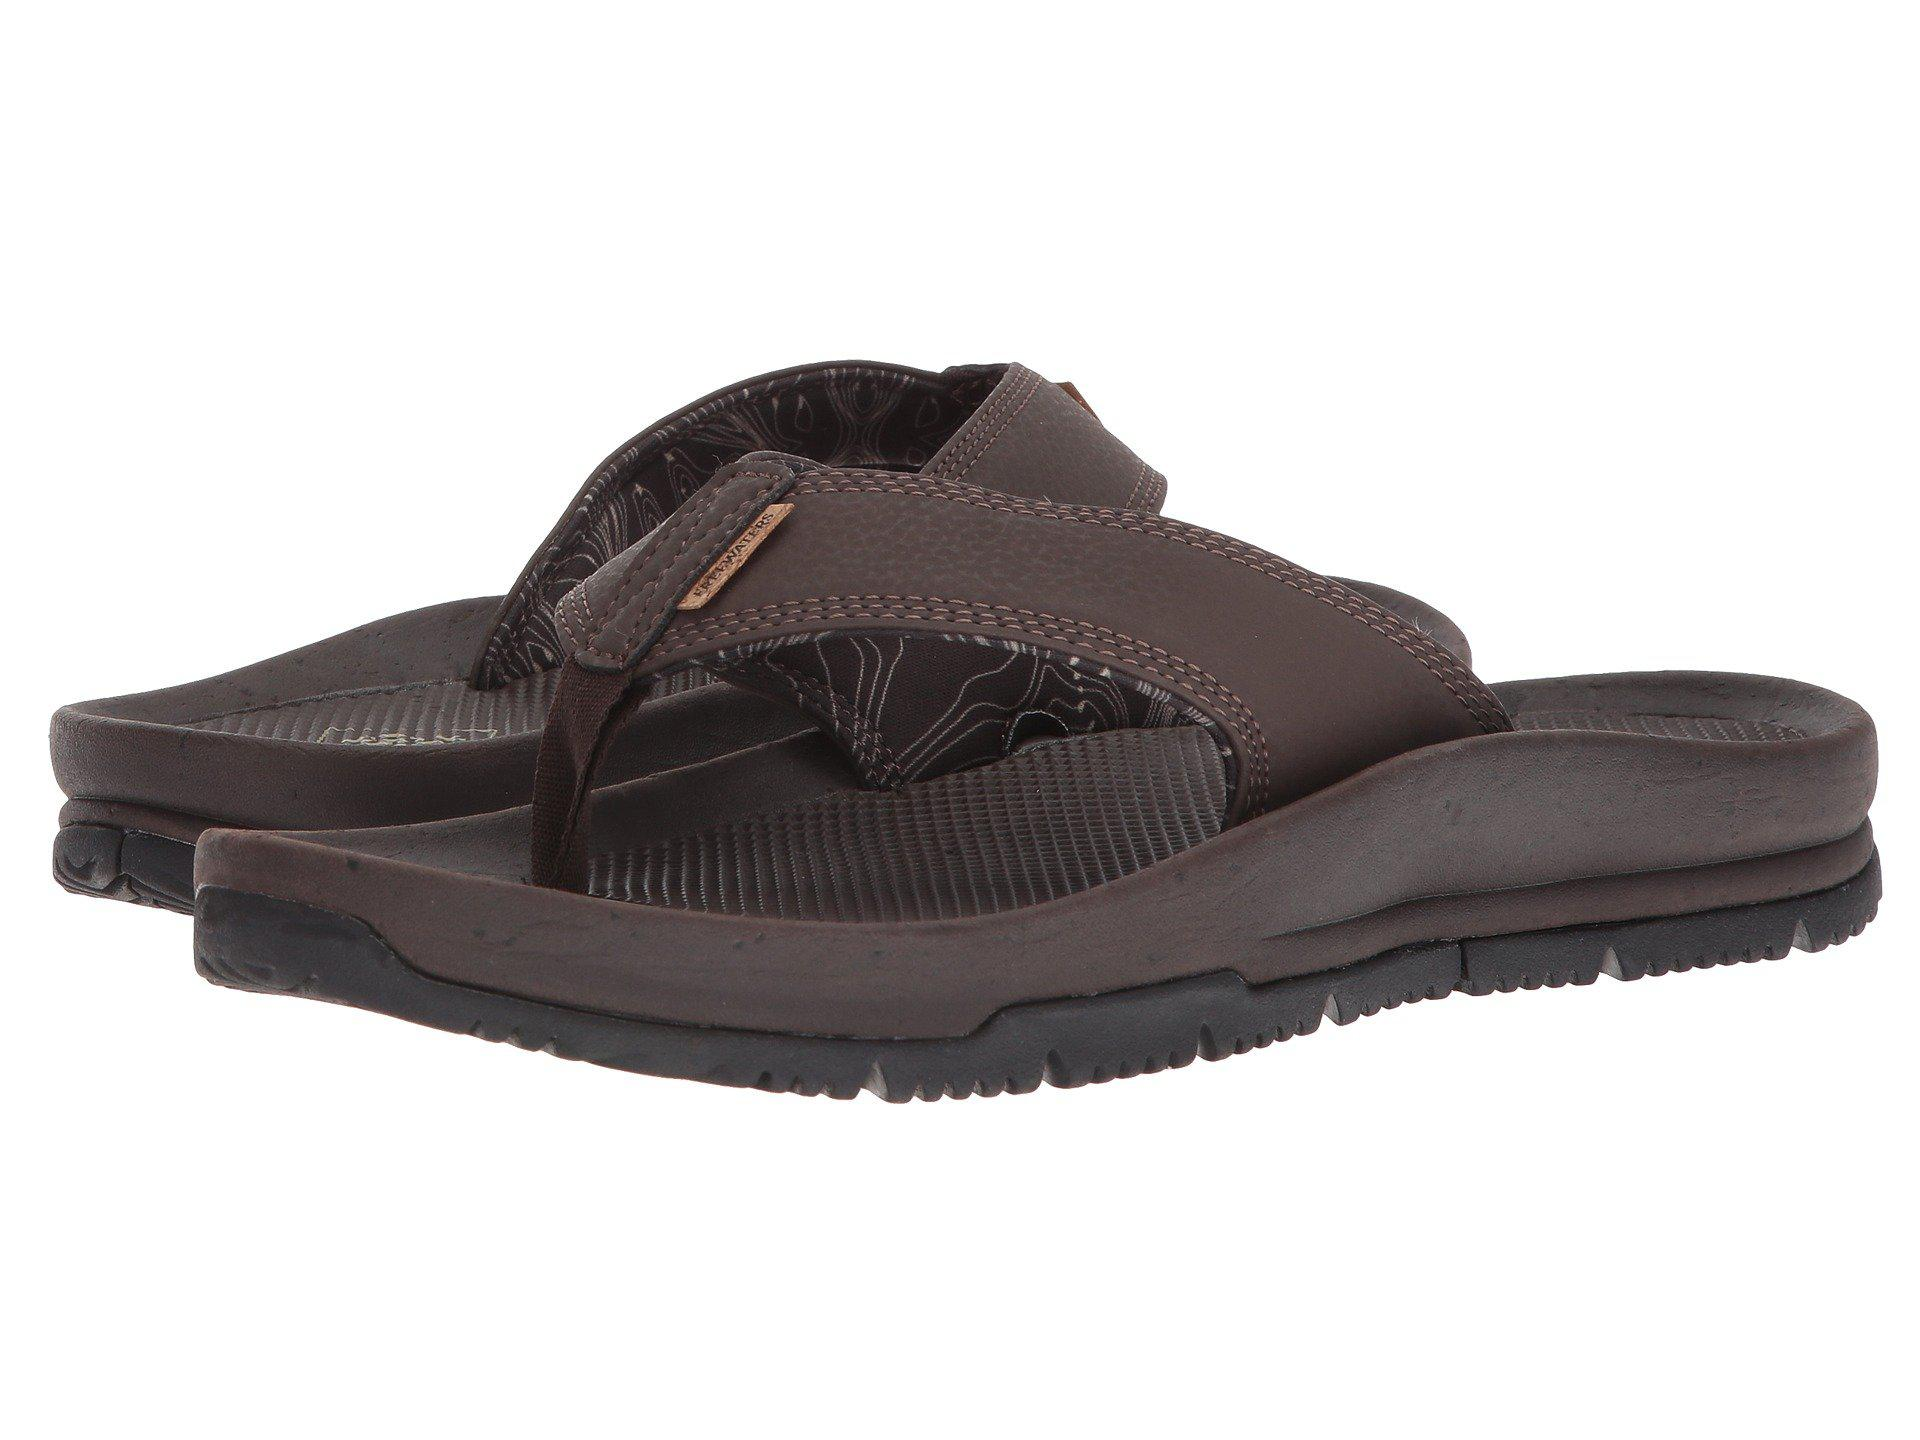 117c42dd82a Lyst - Freewaters Magic Carpet (black) Men s Sandals in Brown for ...